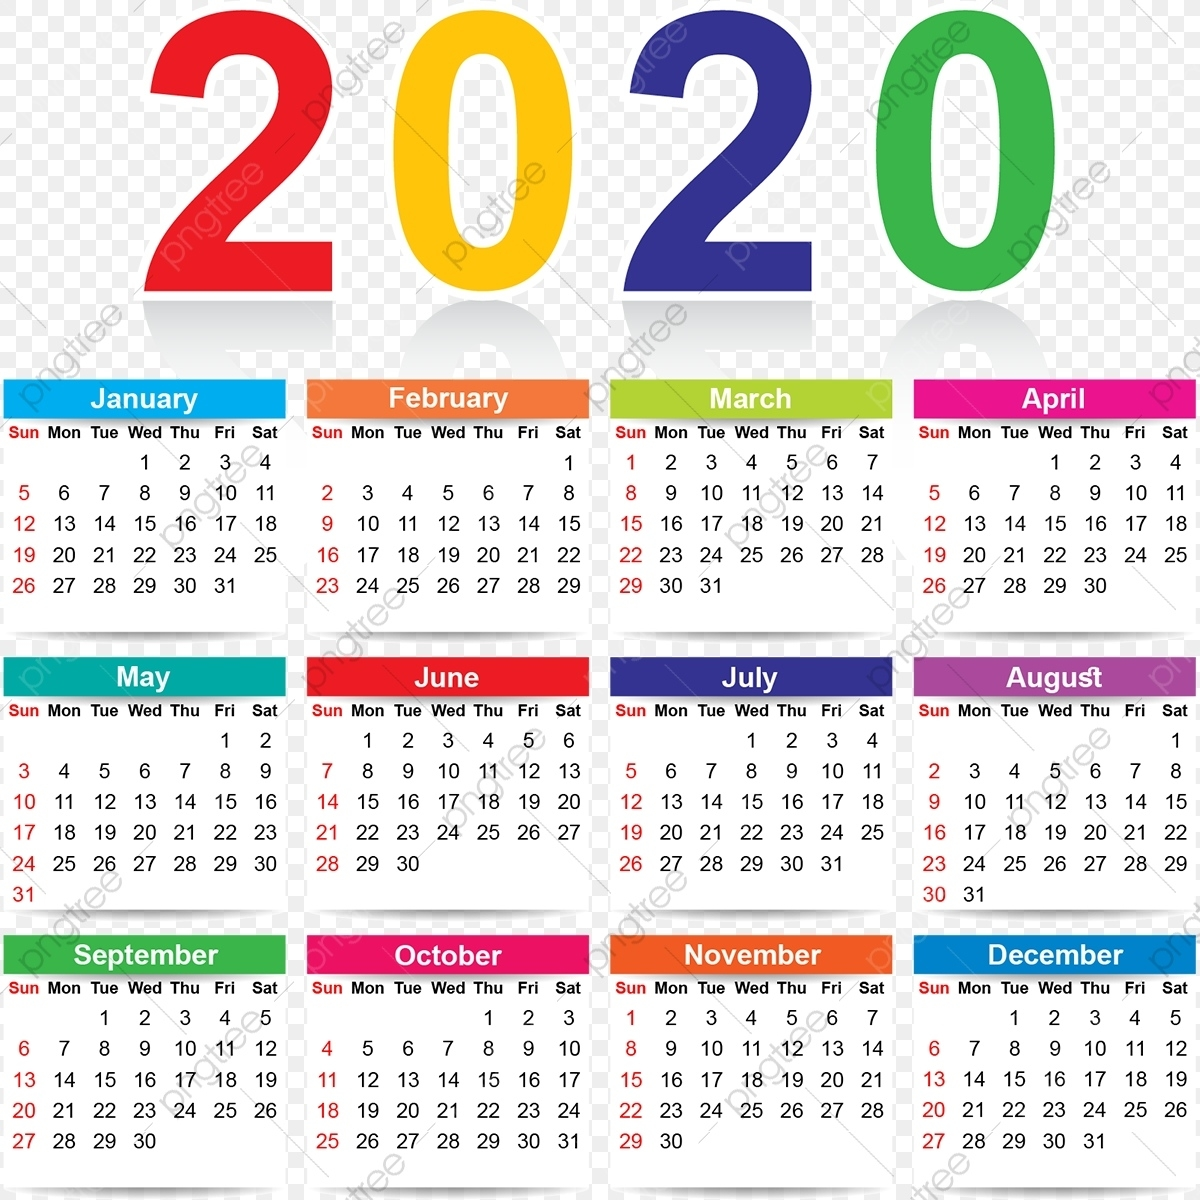 Colorful 2020 Calendar, Colorful, Colorful Calendar 2020 Calendar Free Vector